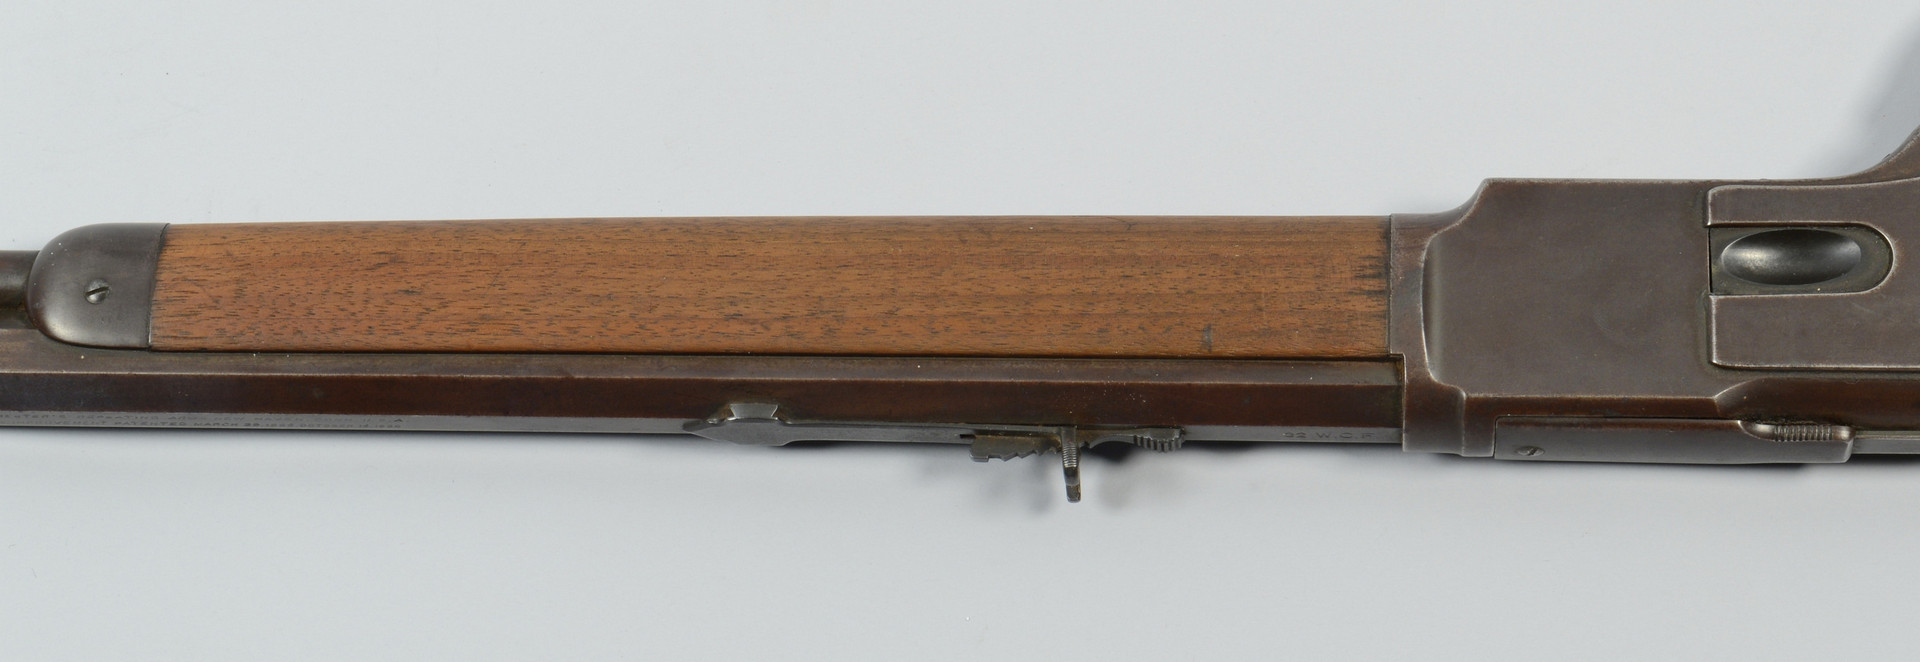 Lot 413: 1873 Winchester Rifle, .32 Cal